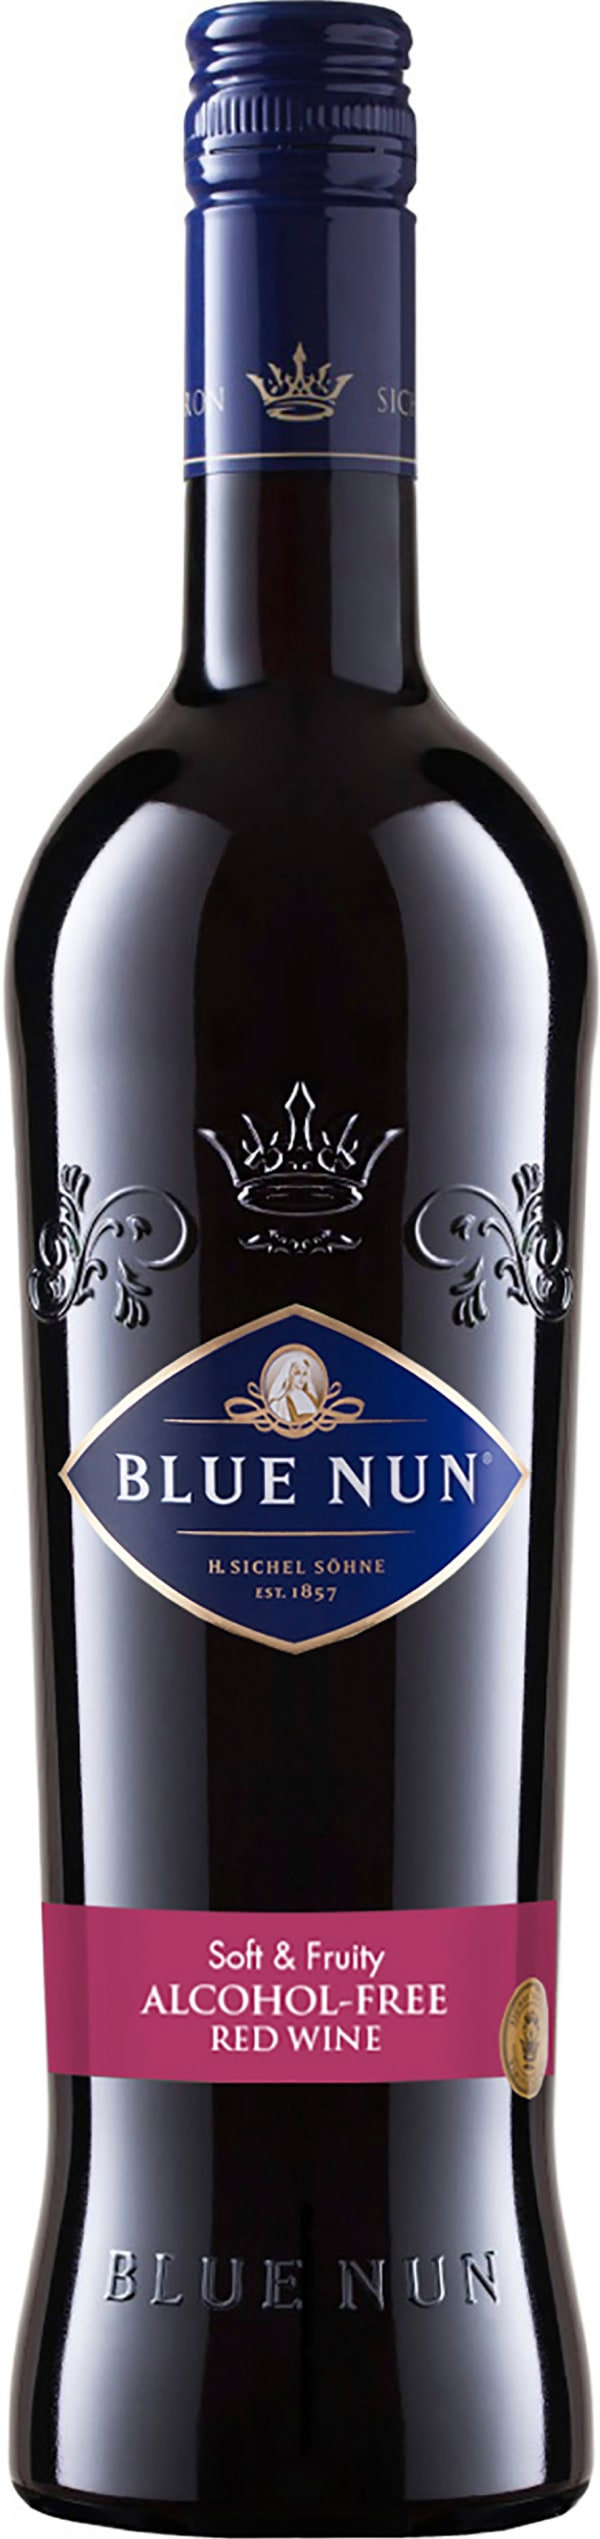 Blue Nun Red Alcohol Free